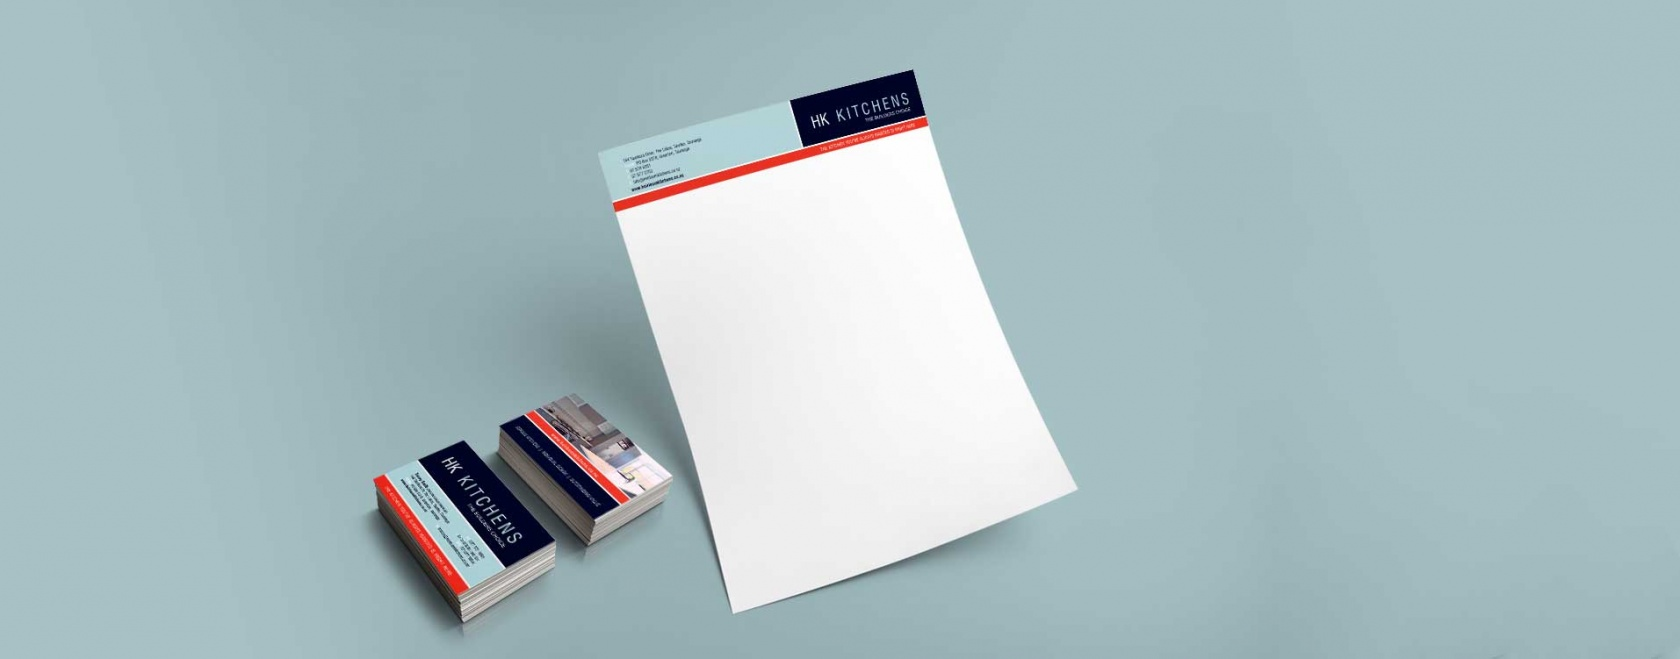 project-HKKitchens-stationery